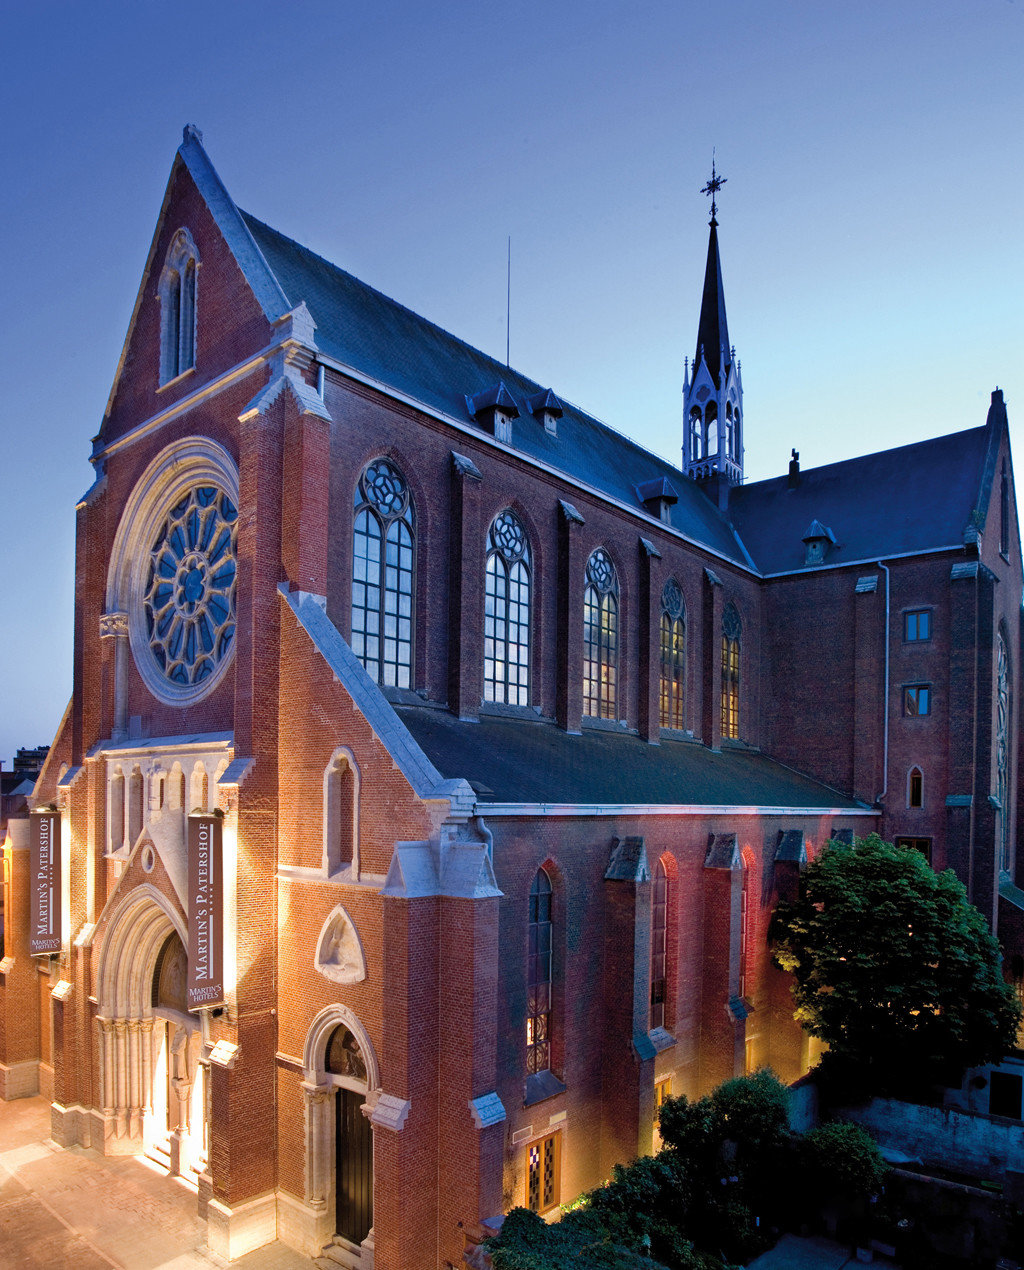 City Cultural Exterior Historic building Town house landmark Church Architecture neighbourhood place of worship Downtown brick evening chapel cityscape synagogue